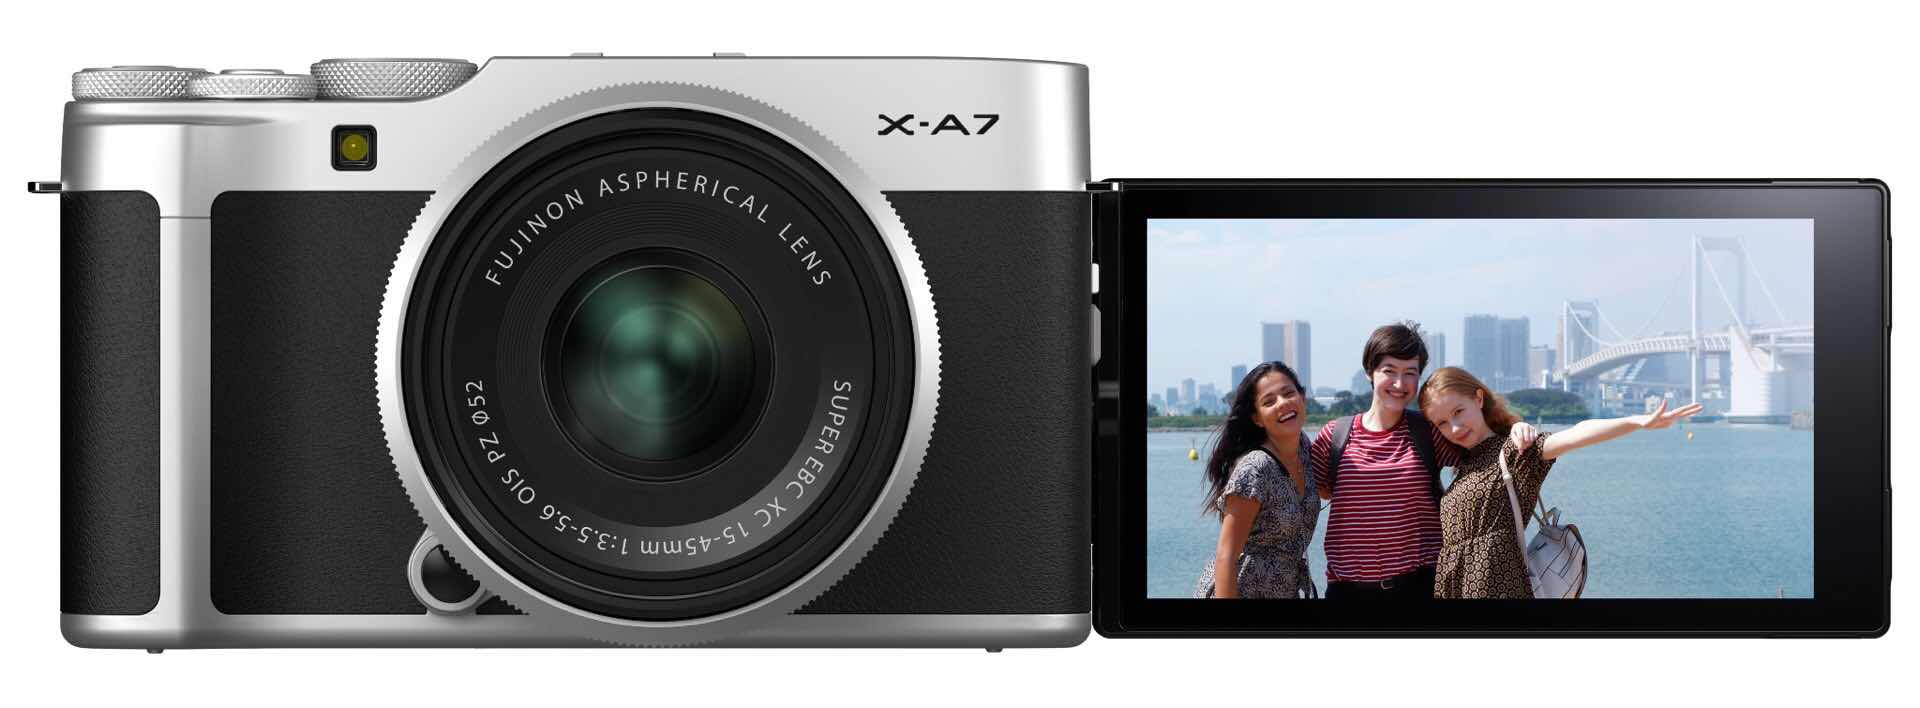 fujifilm-x-a7-mirrorless-digital-camera